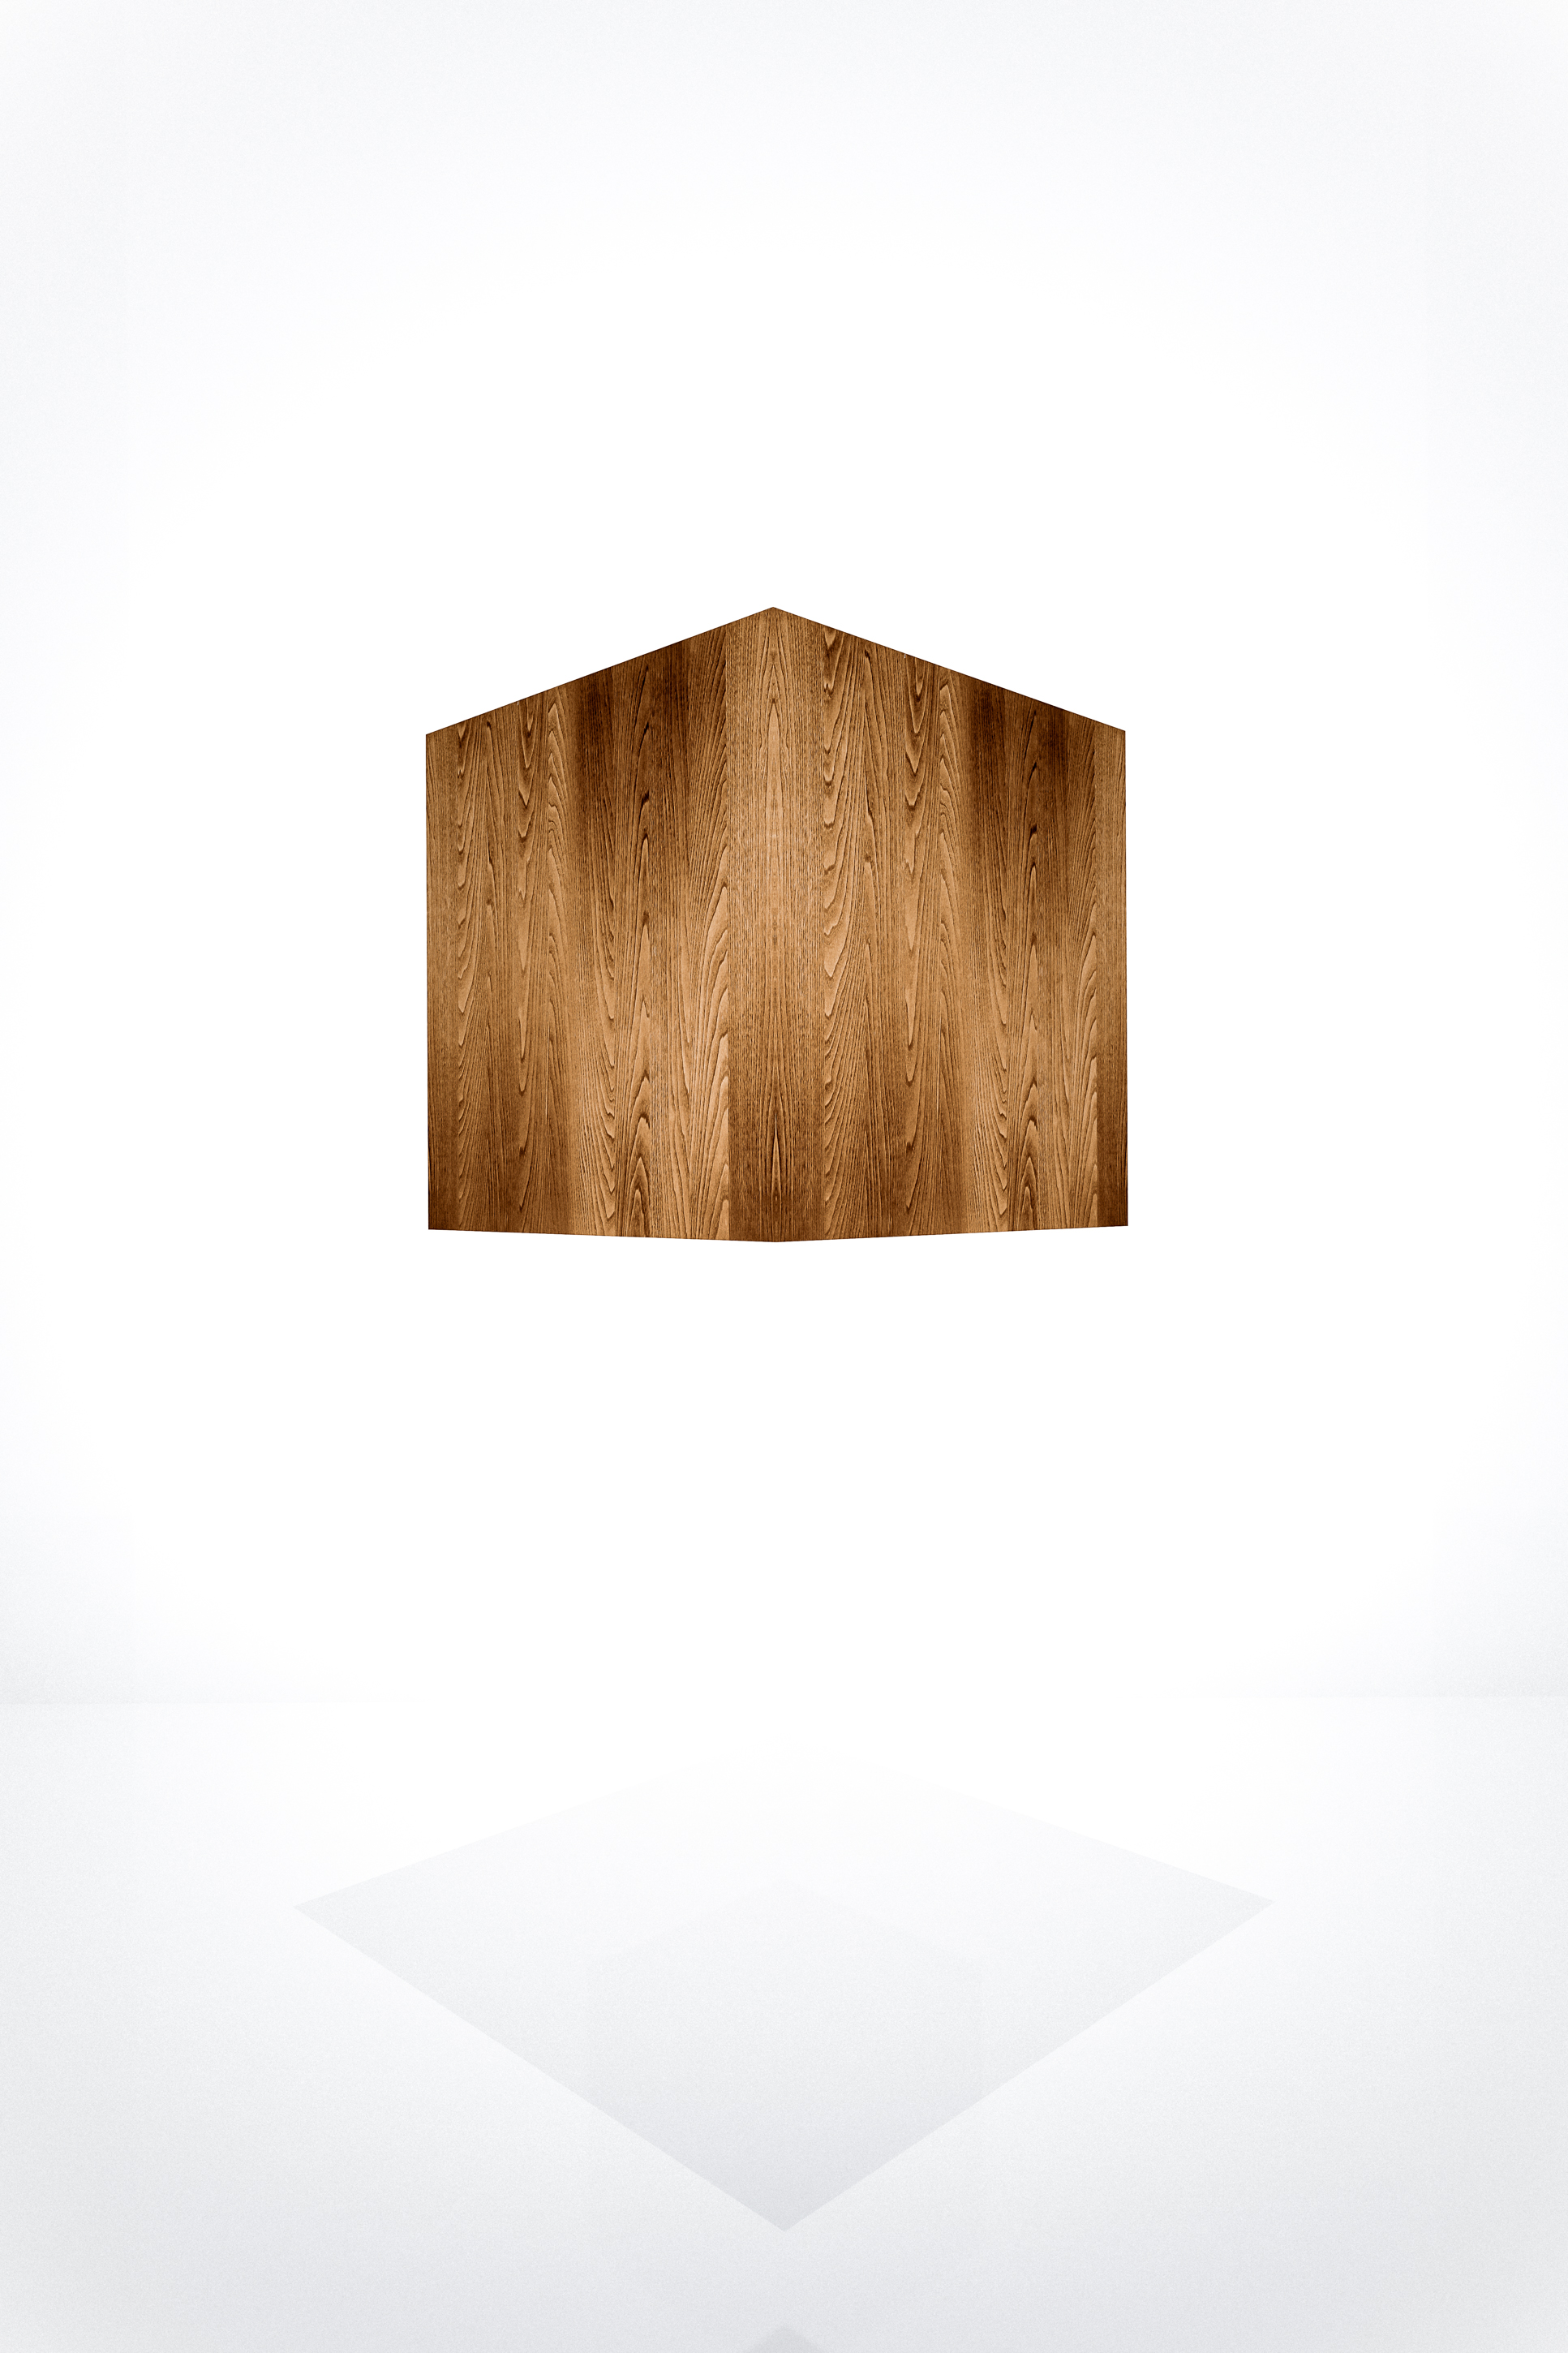 alban_guerry-suire_wooden_geometry-004.jpg